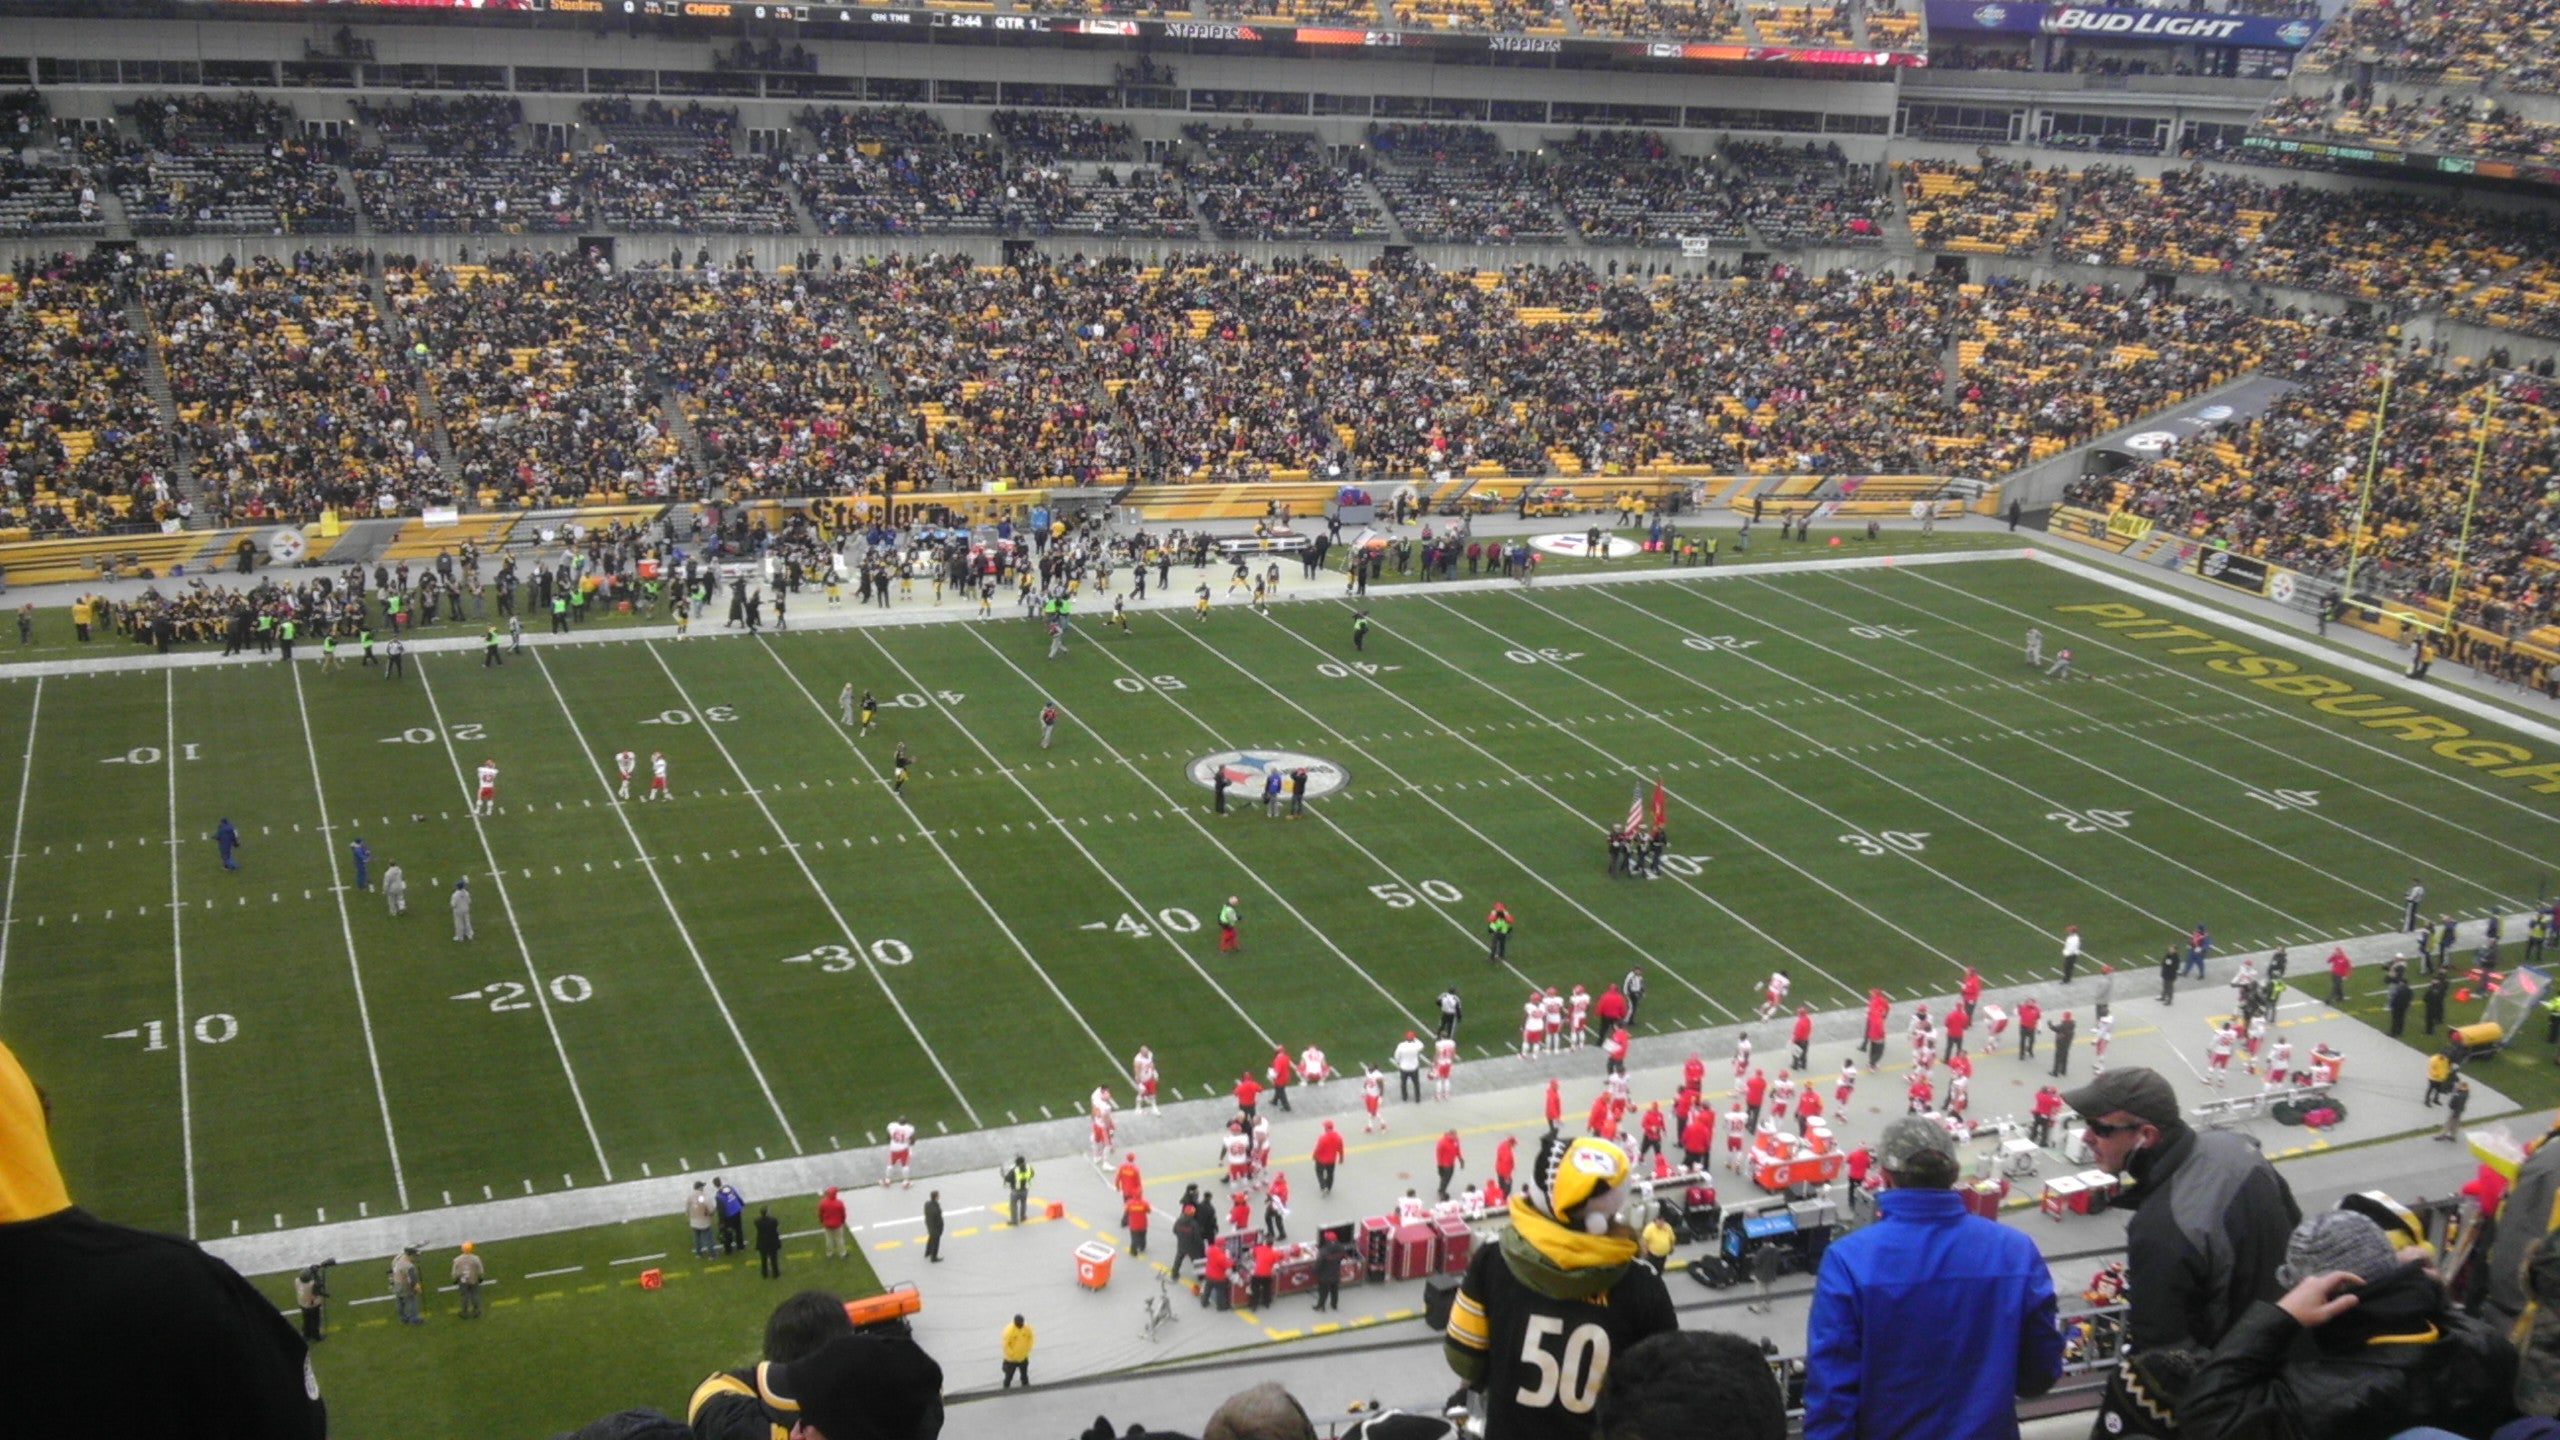 Fútbol canadiense en Heinz Field